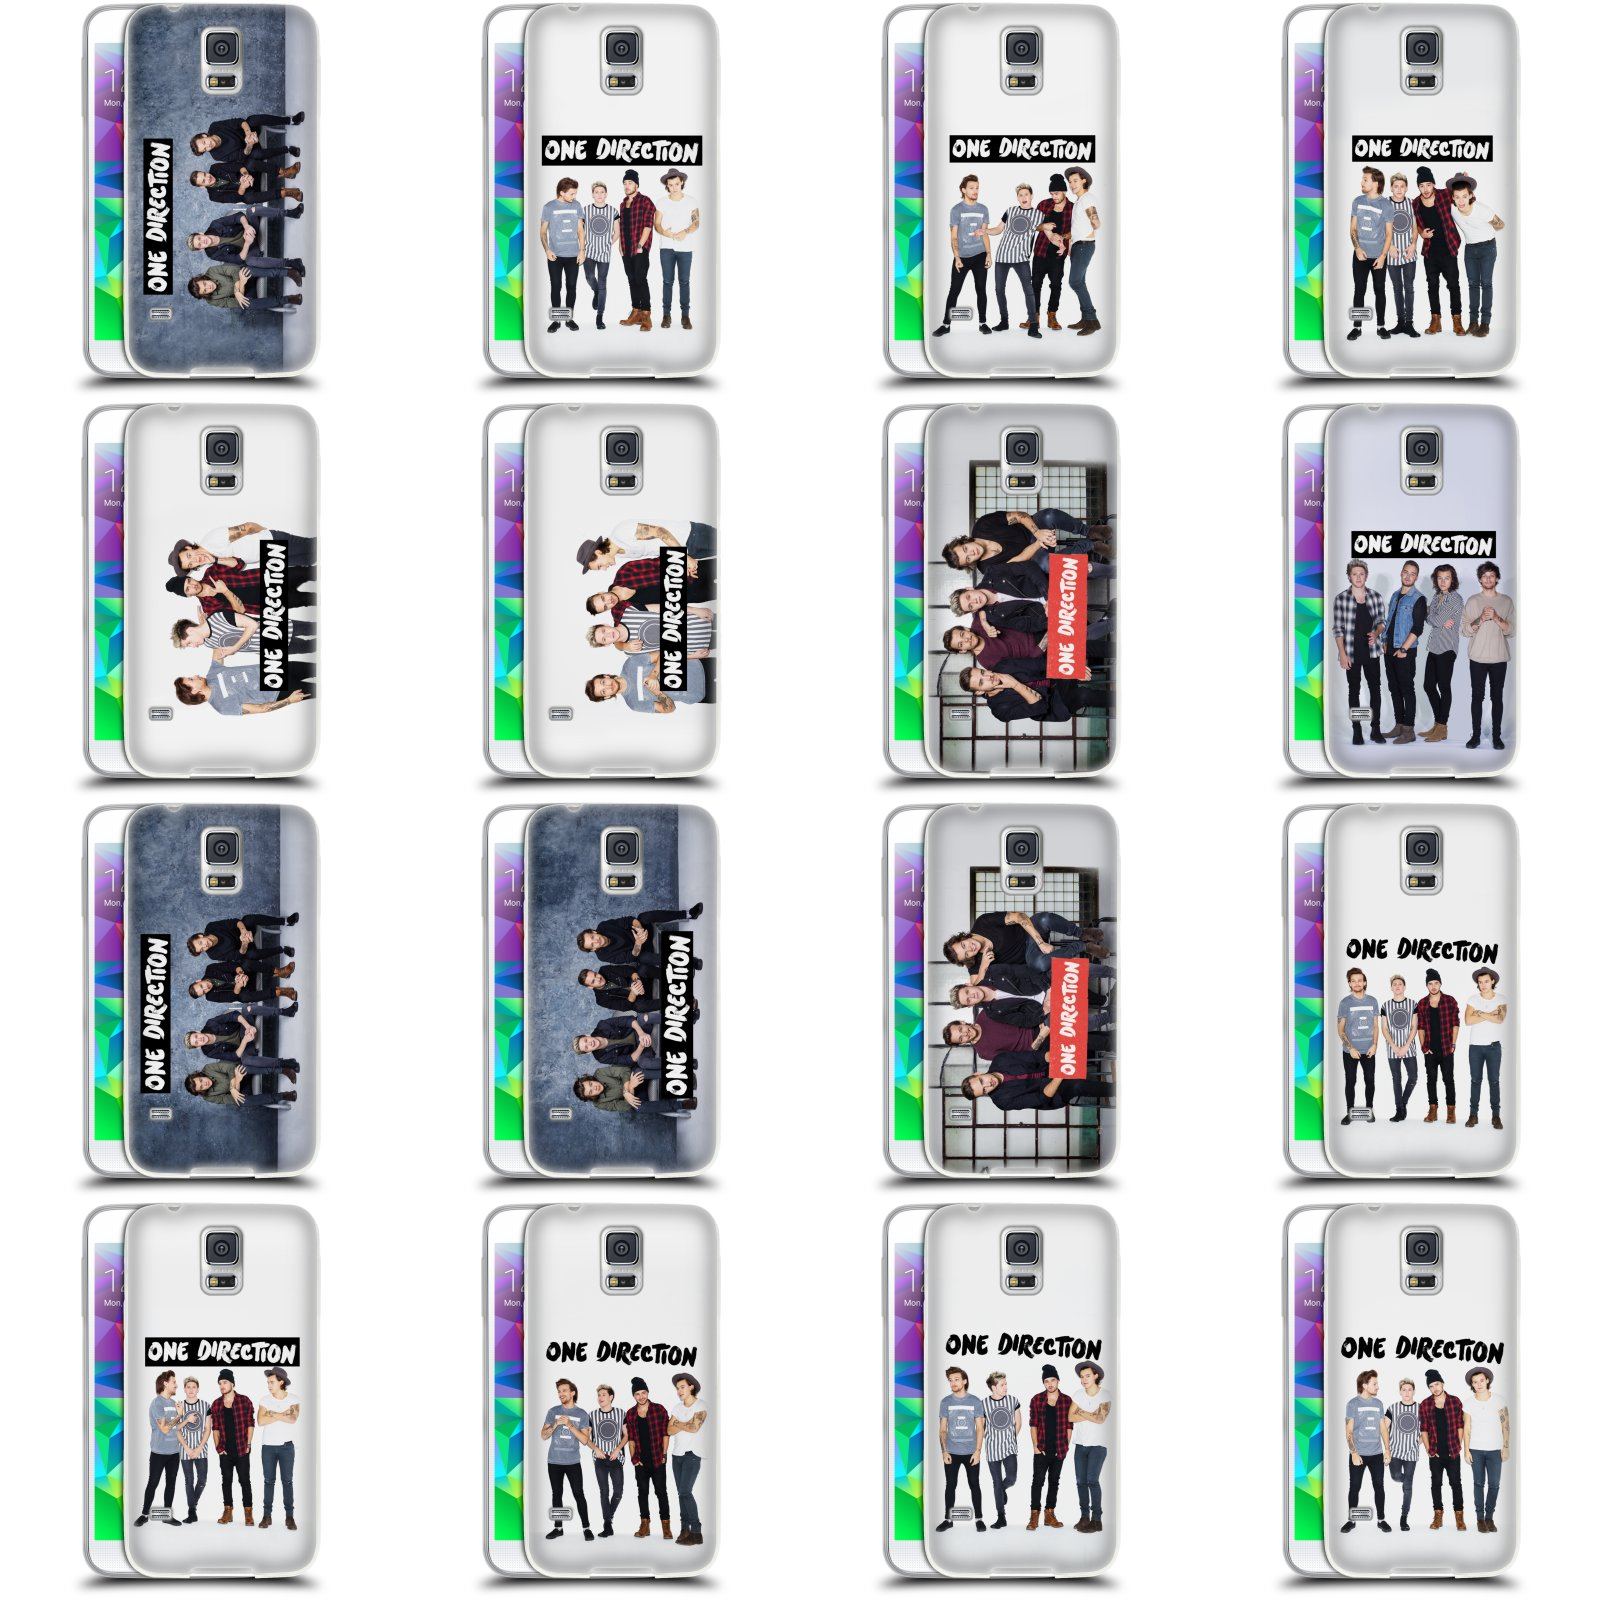 how to make a group on samsung galaxy s5